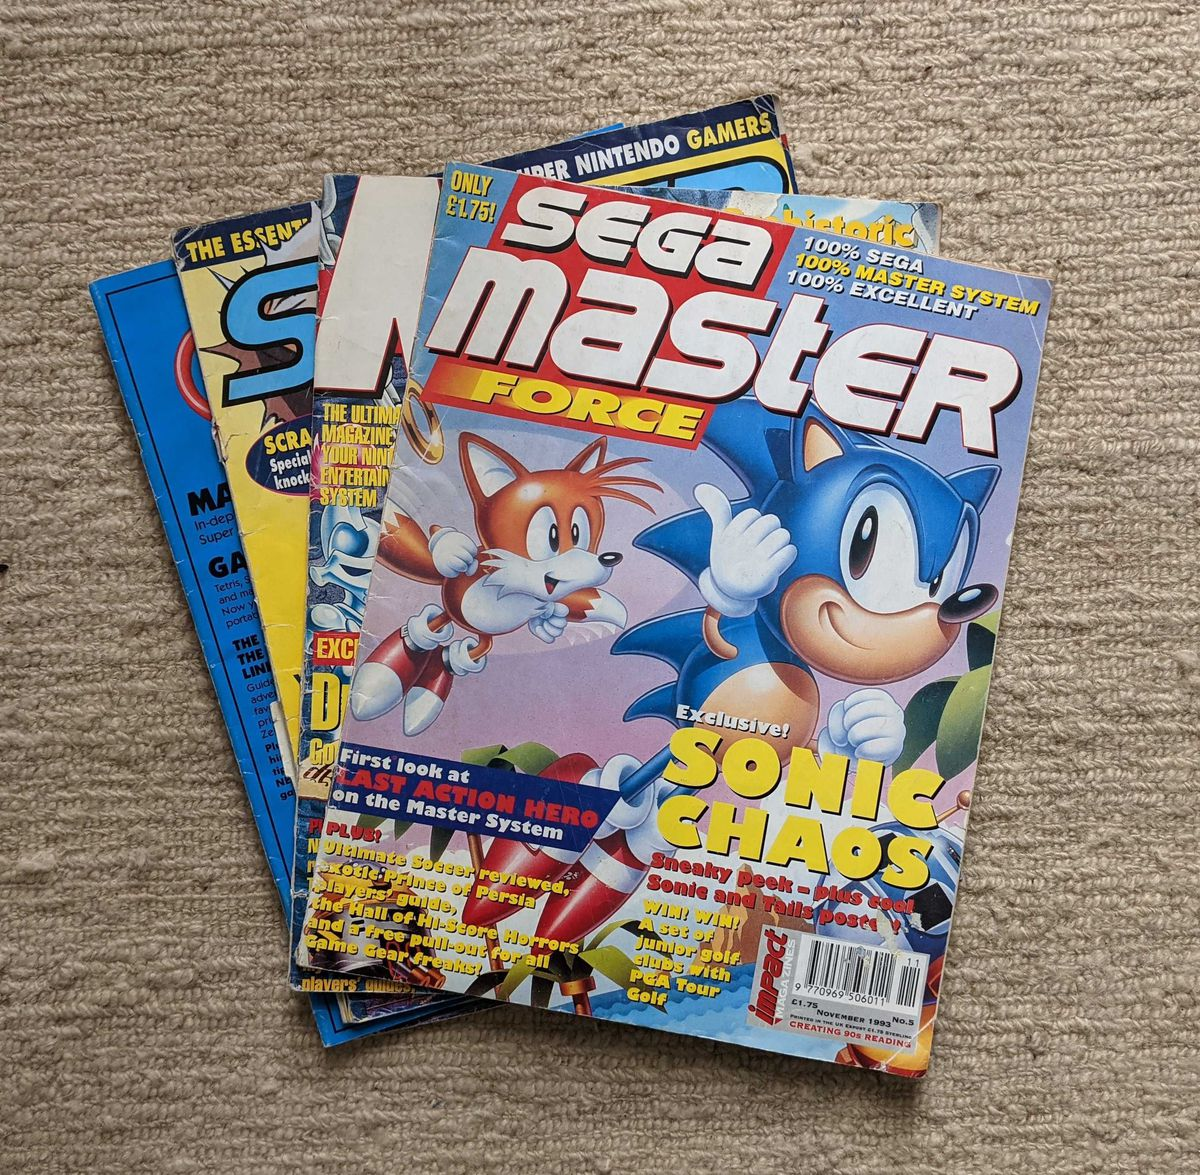 A stack of old video game magazines